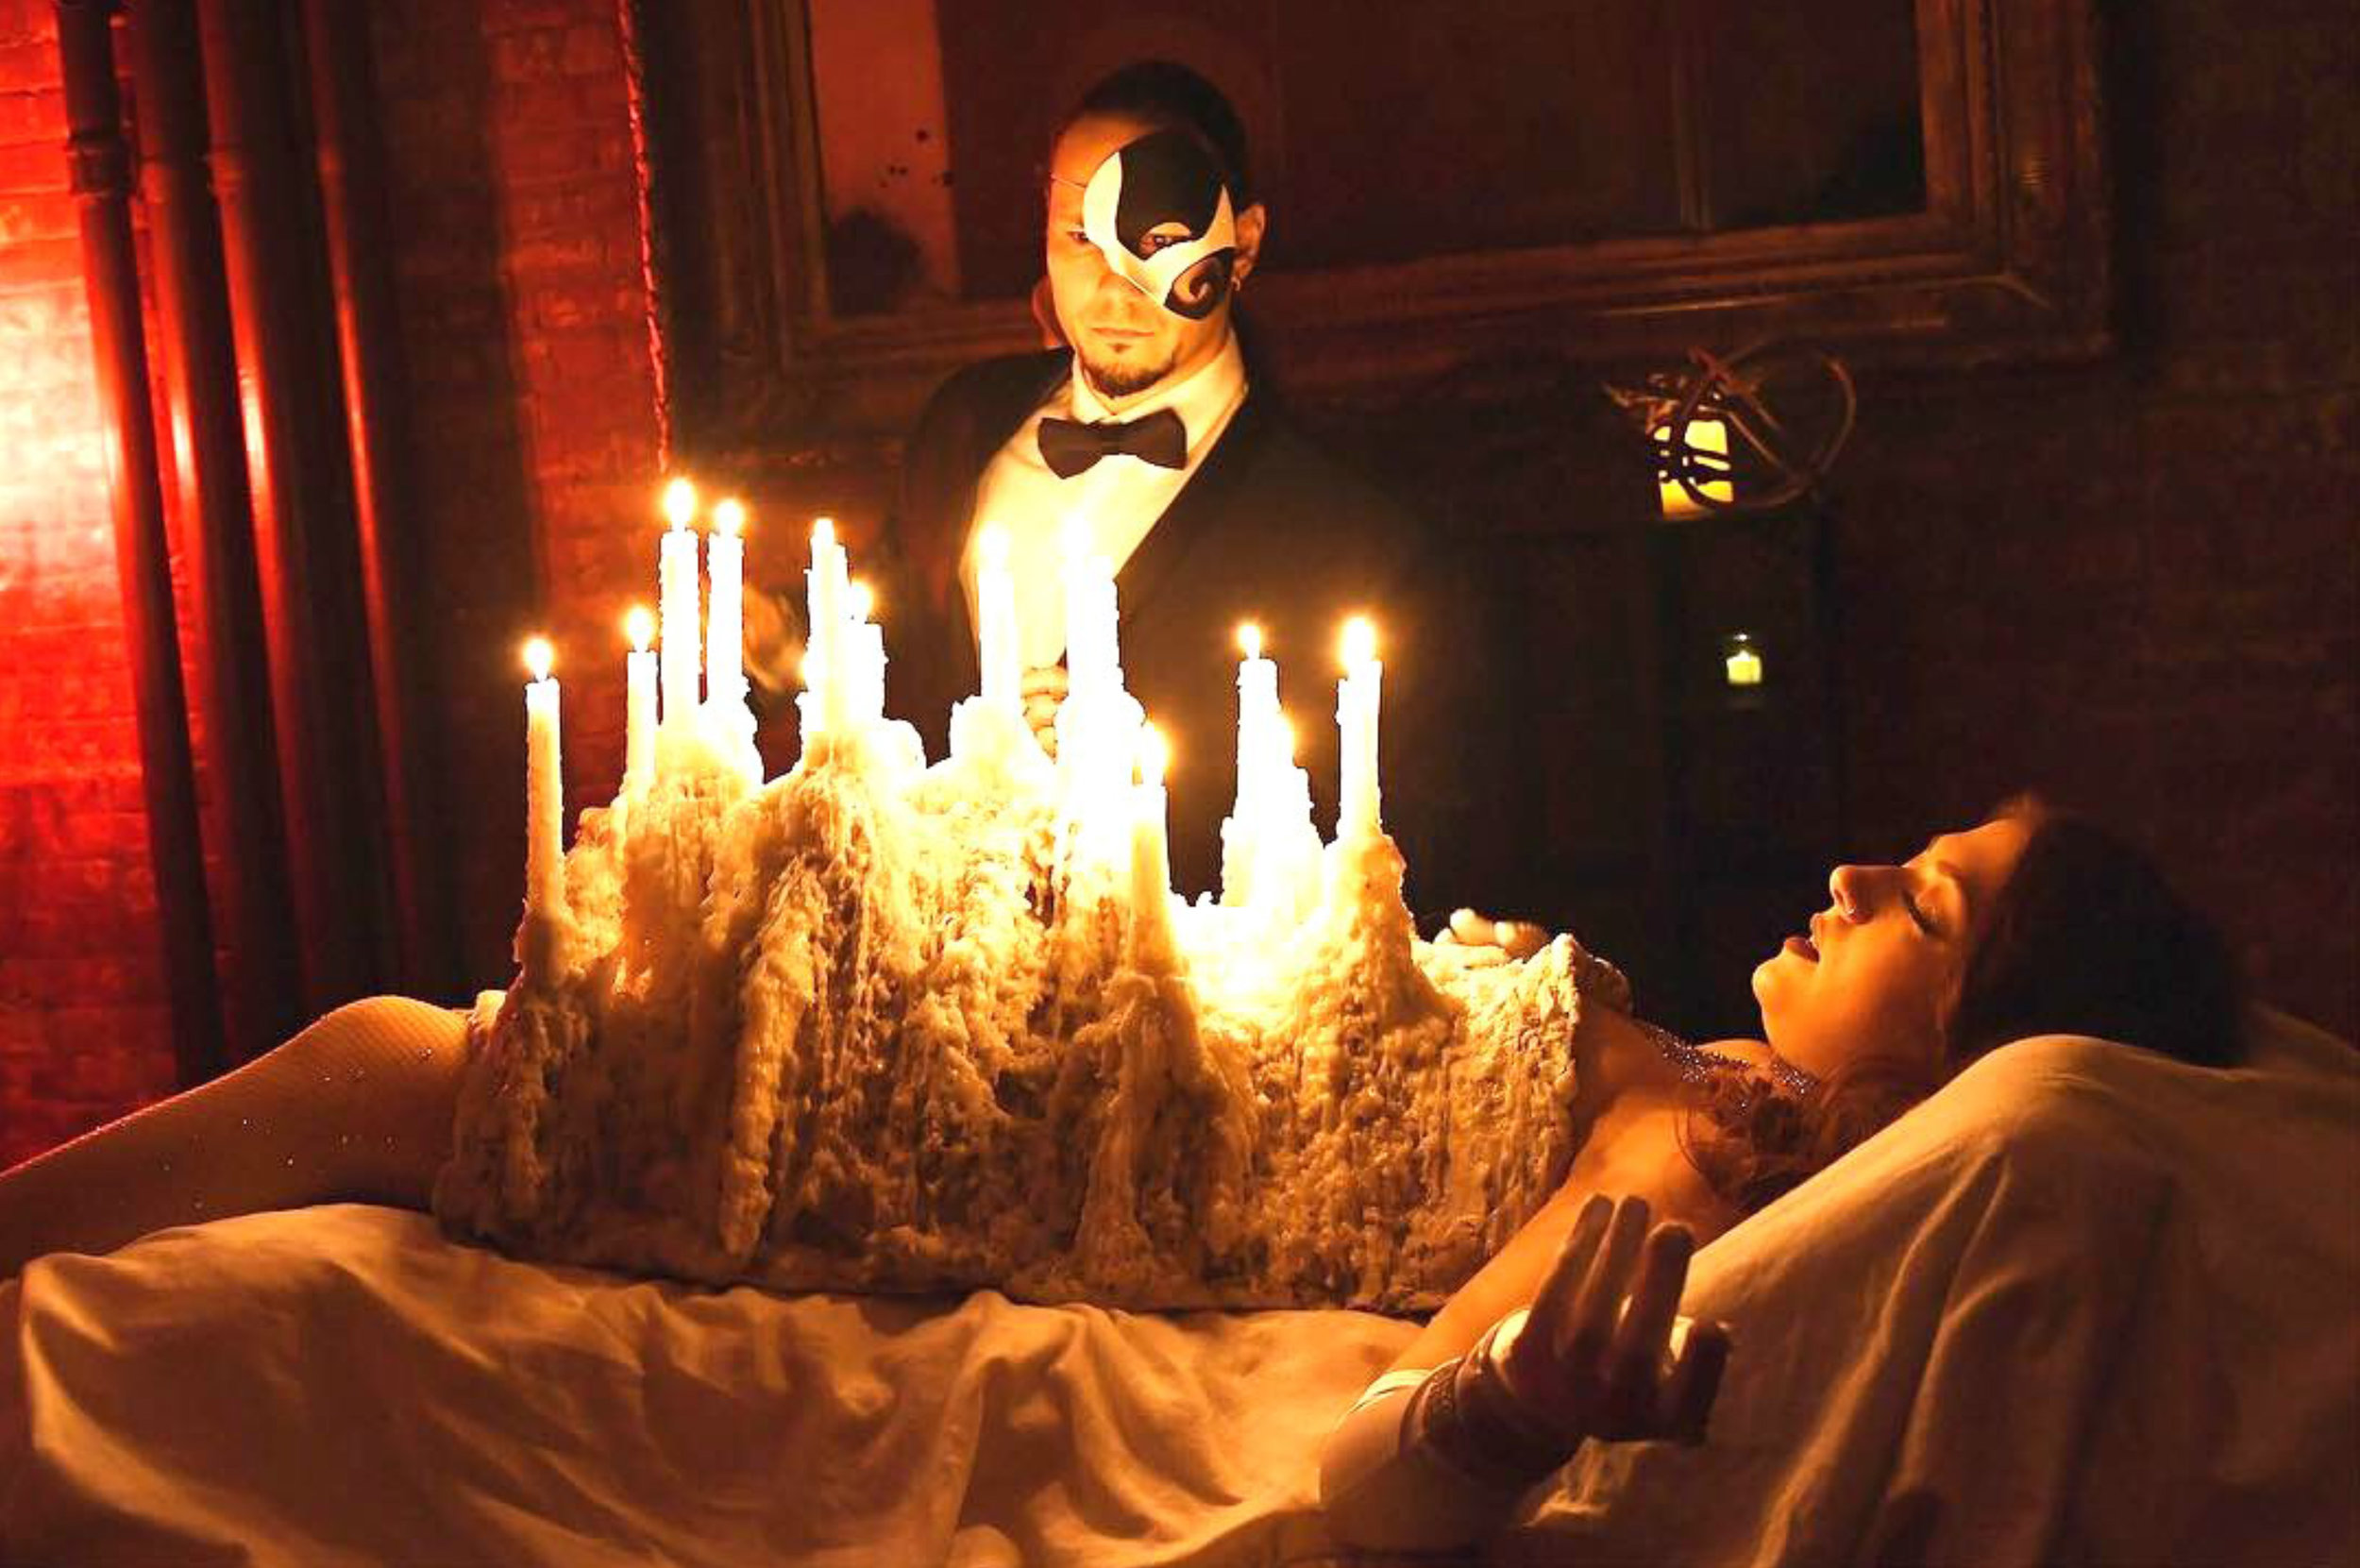 Preview Events - Little Cinema - I am the night - Candle wax model.jpg